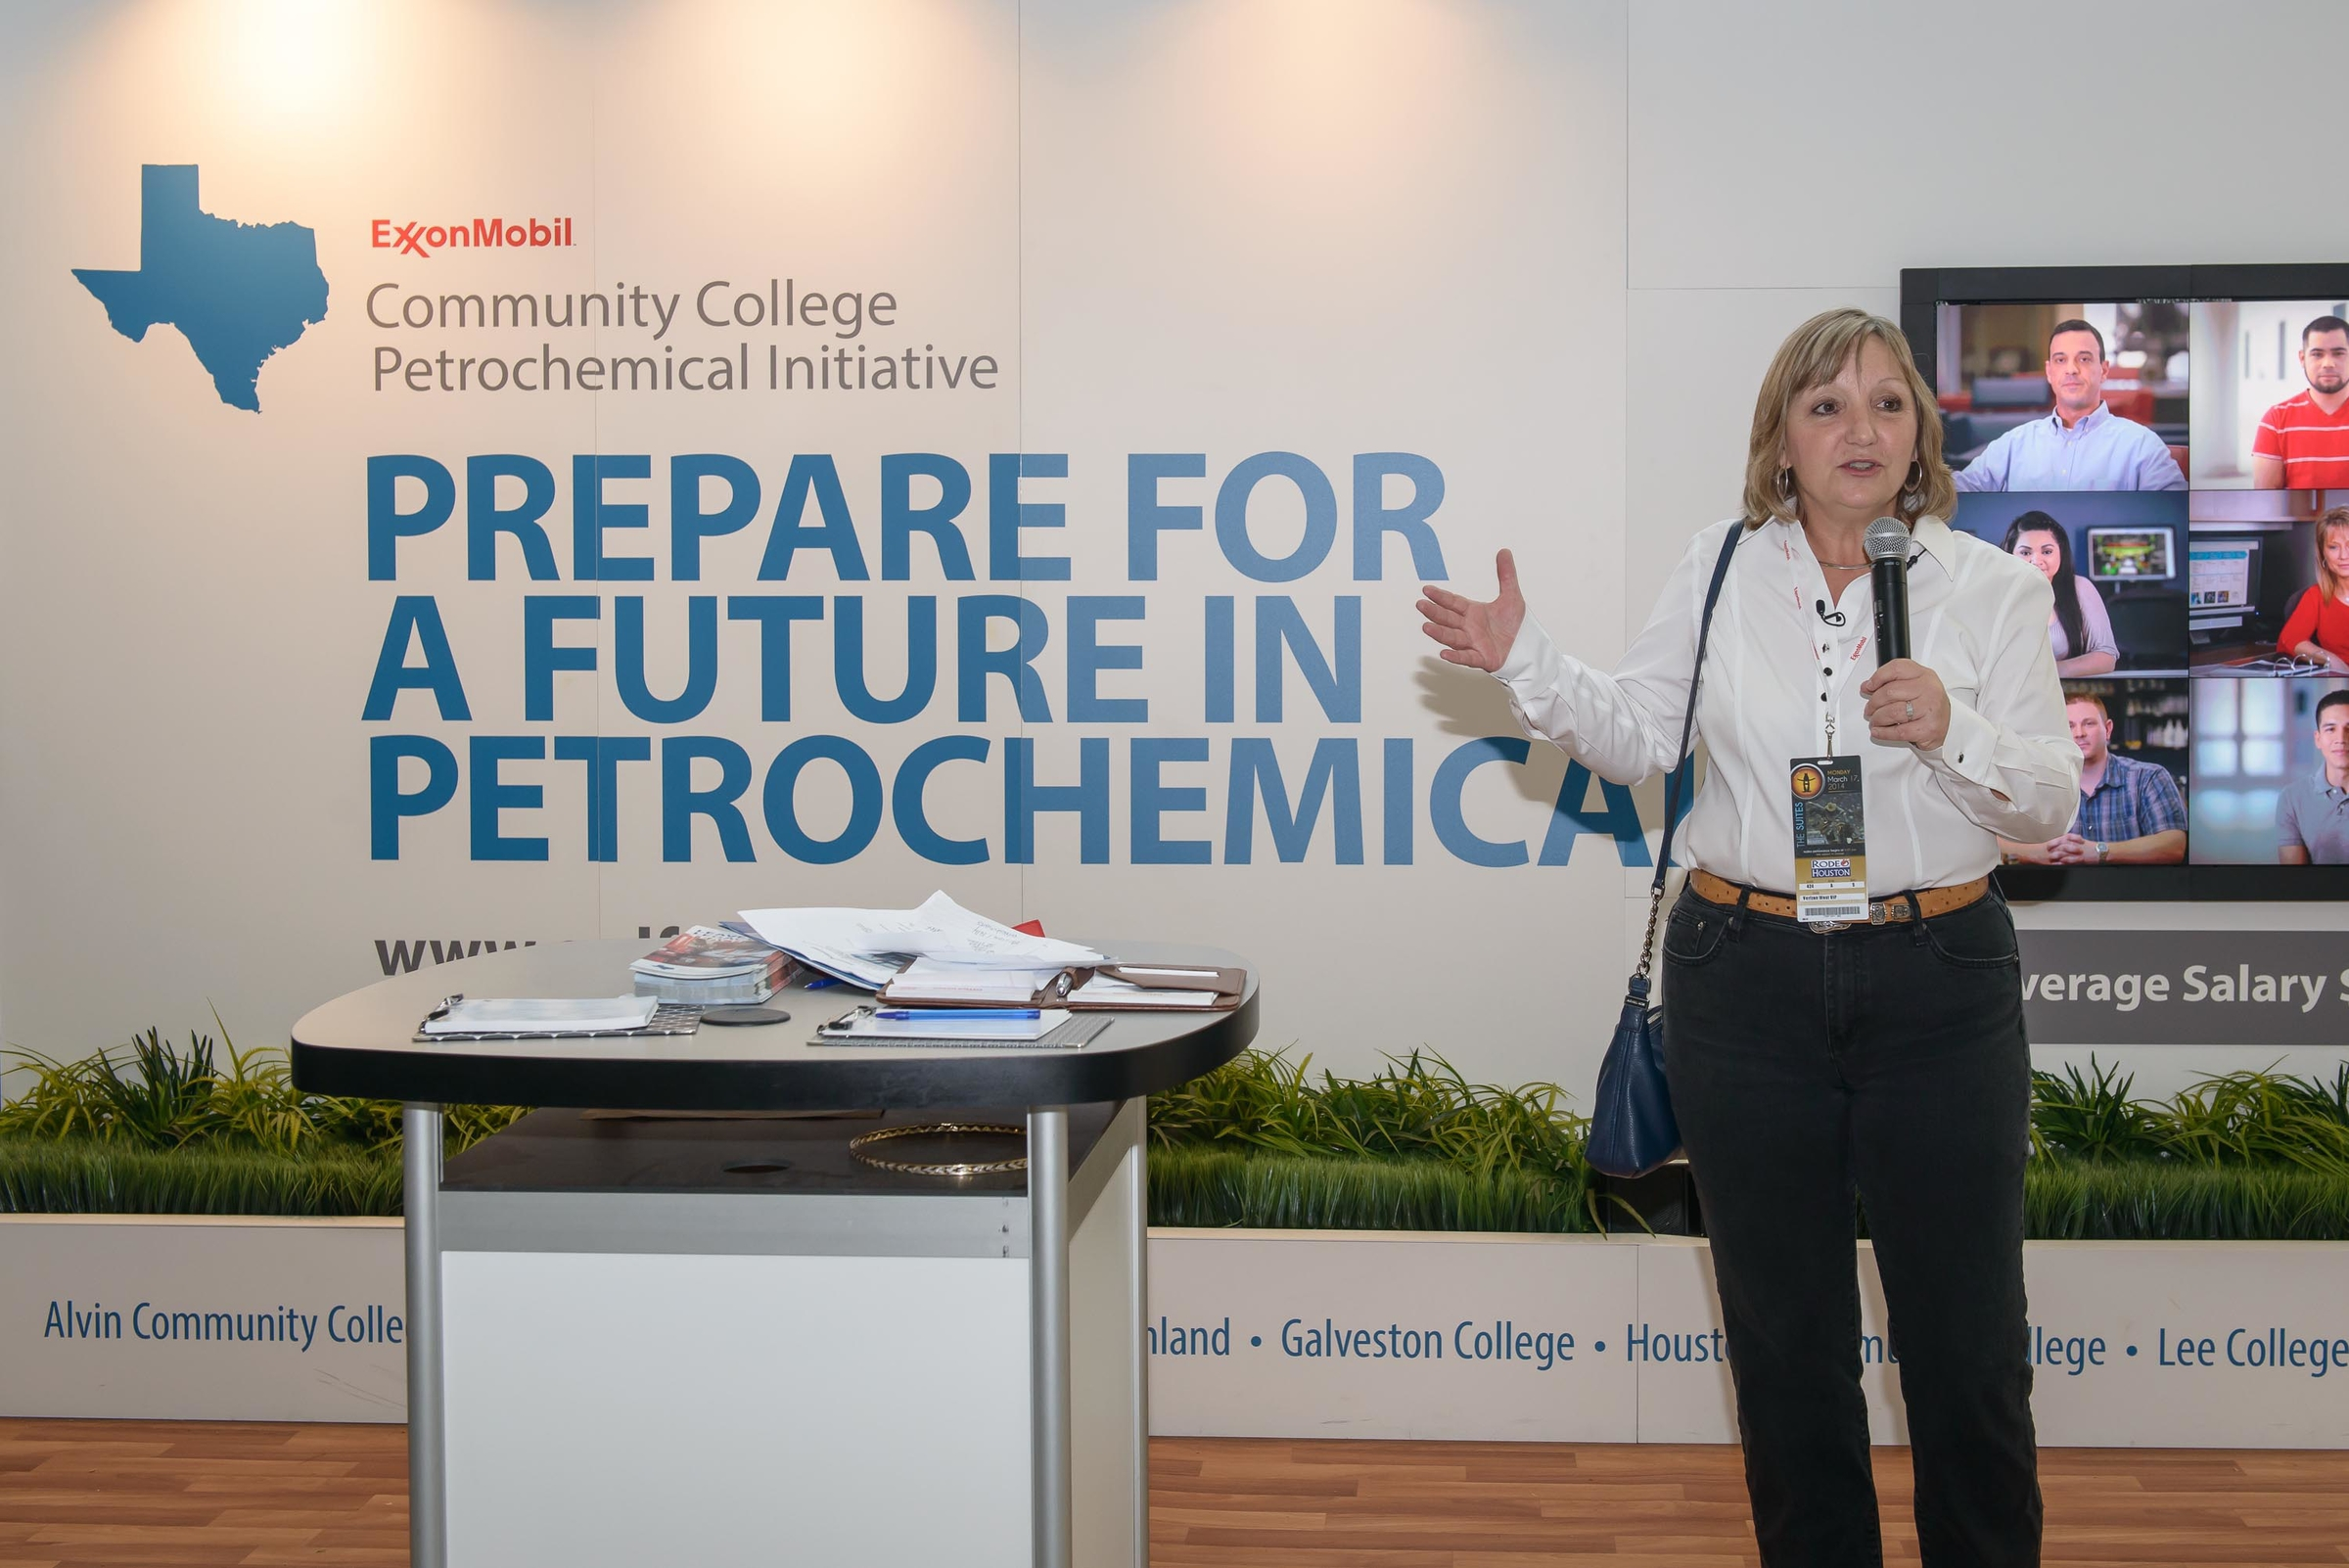 Lynne Lachenmyer, SVP of ExxonMobil Chemical Company, Houston, Texas ...